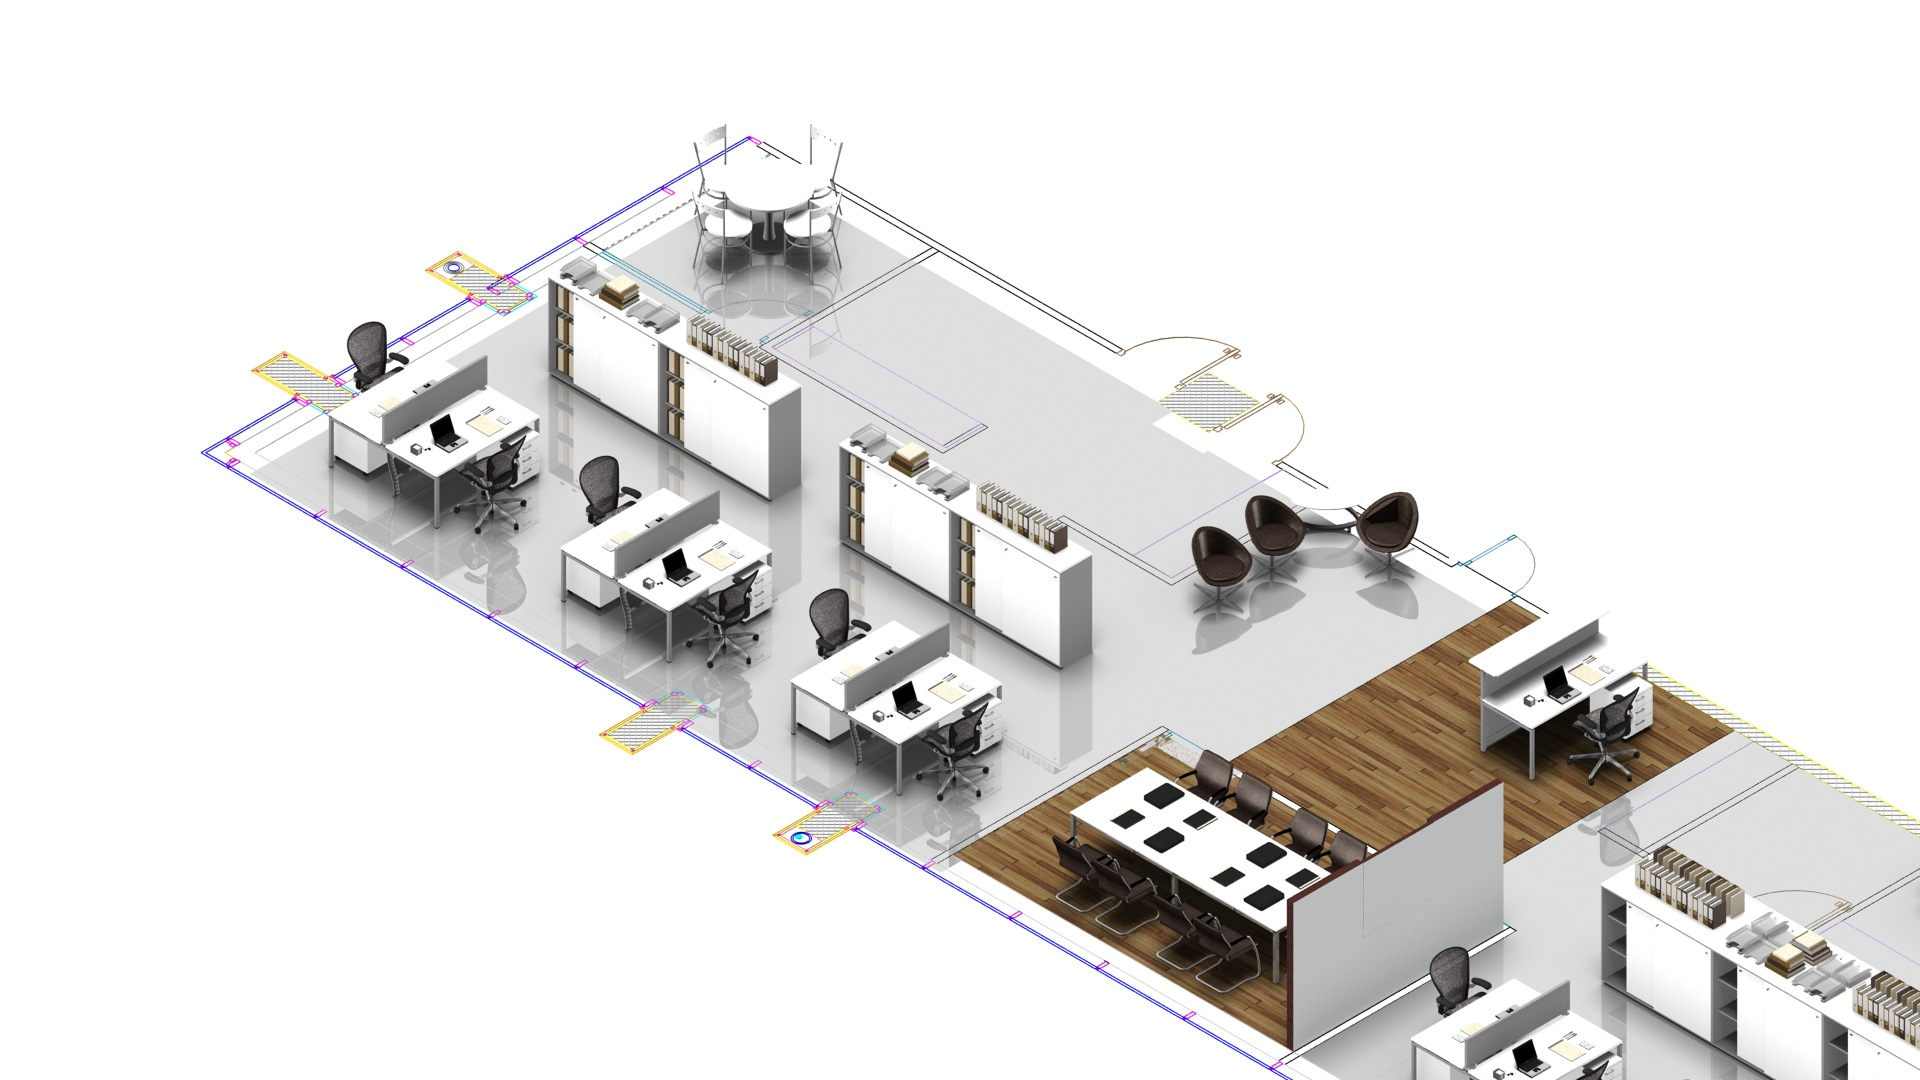 2D & 3D CAD Rendered Images | Richardsons Office Furniture and Supplies